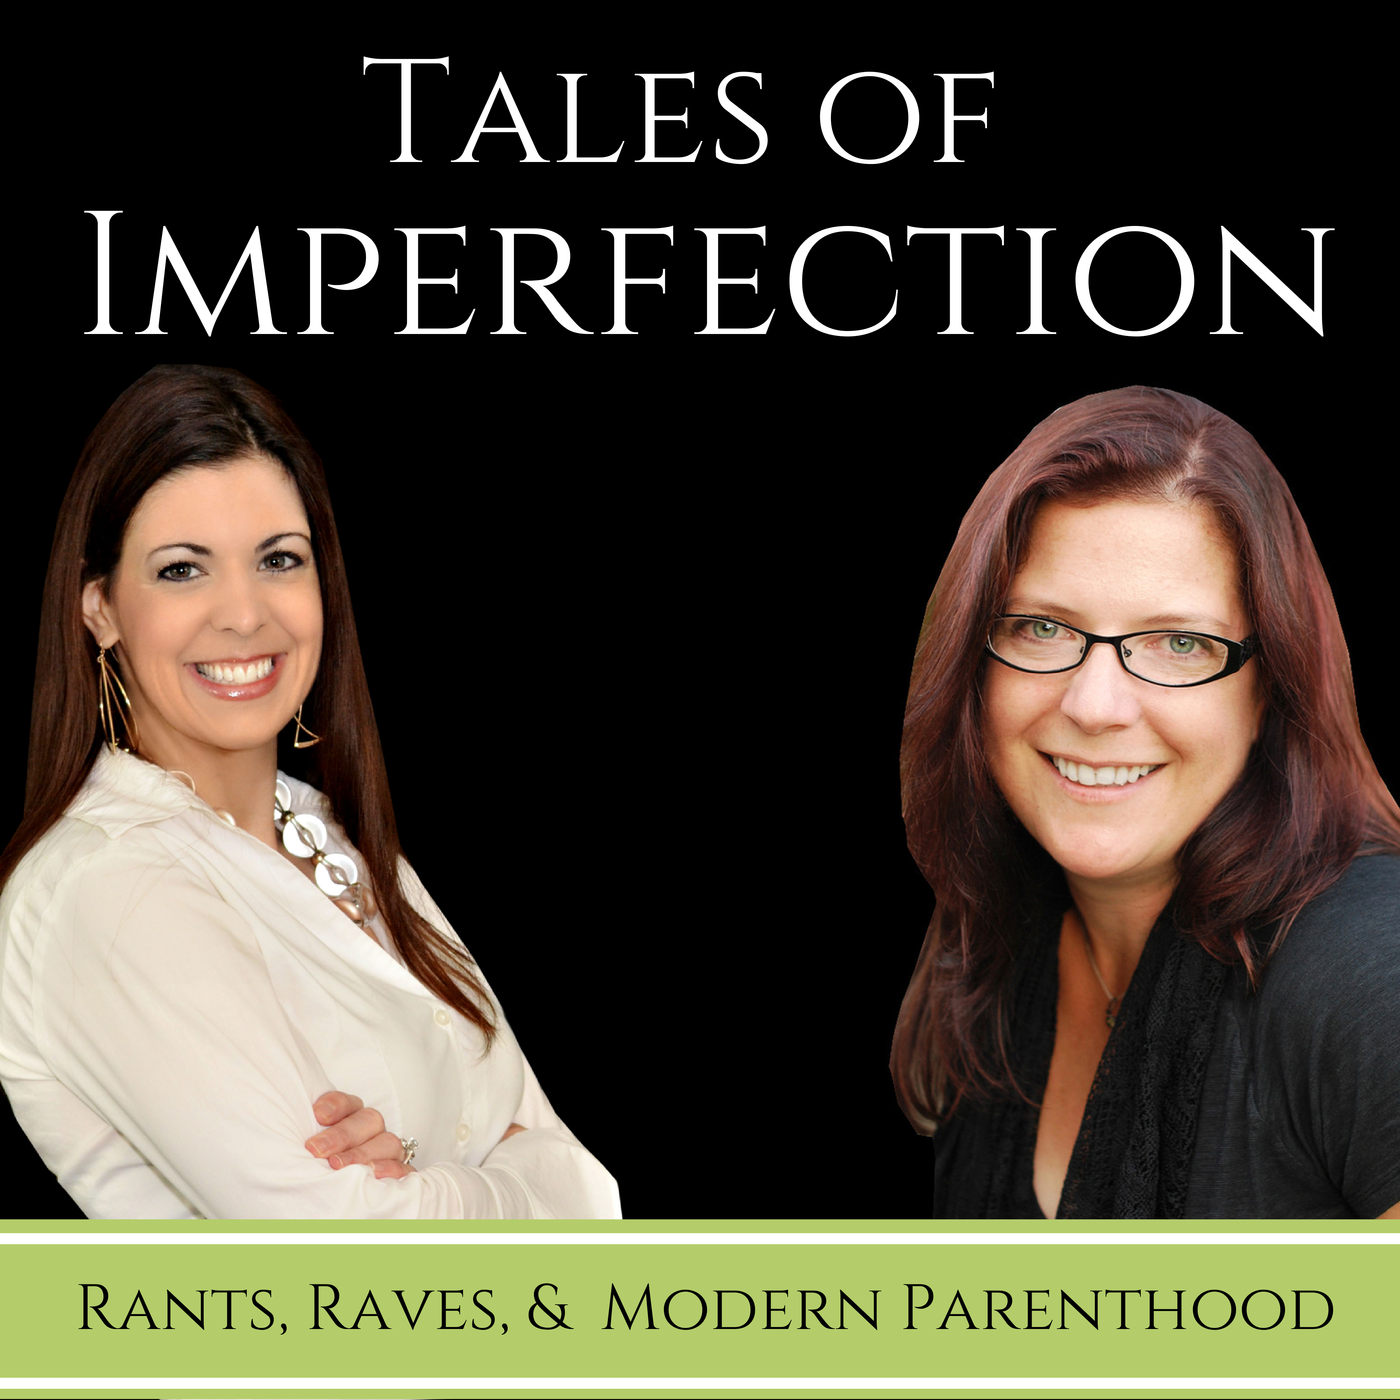 Imperfections of modern society